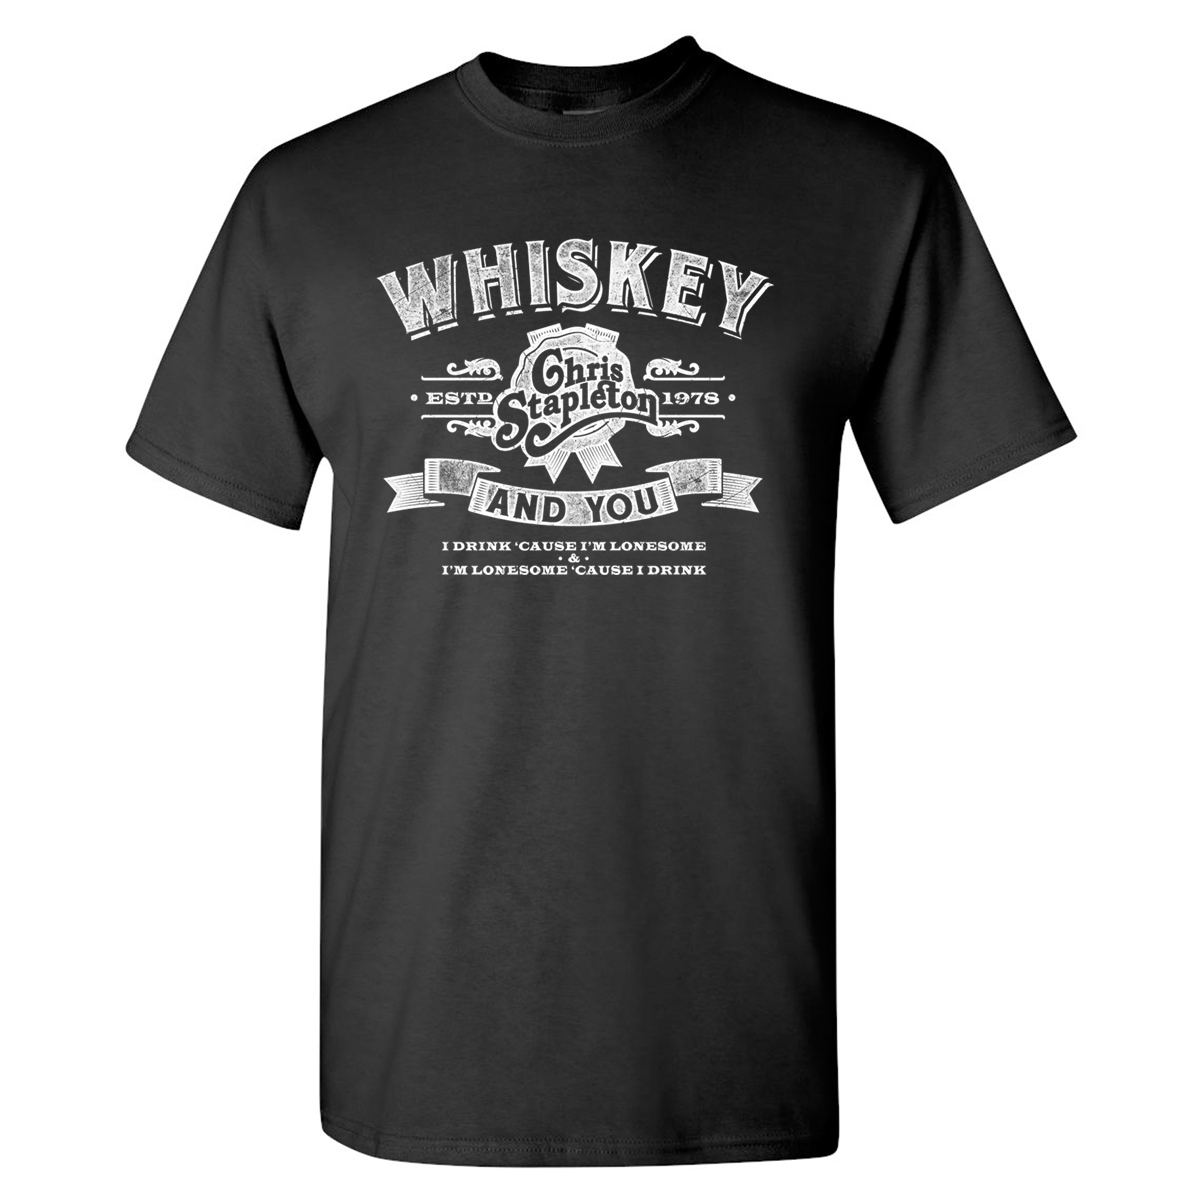 The Whiskey & You T